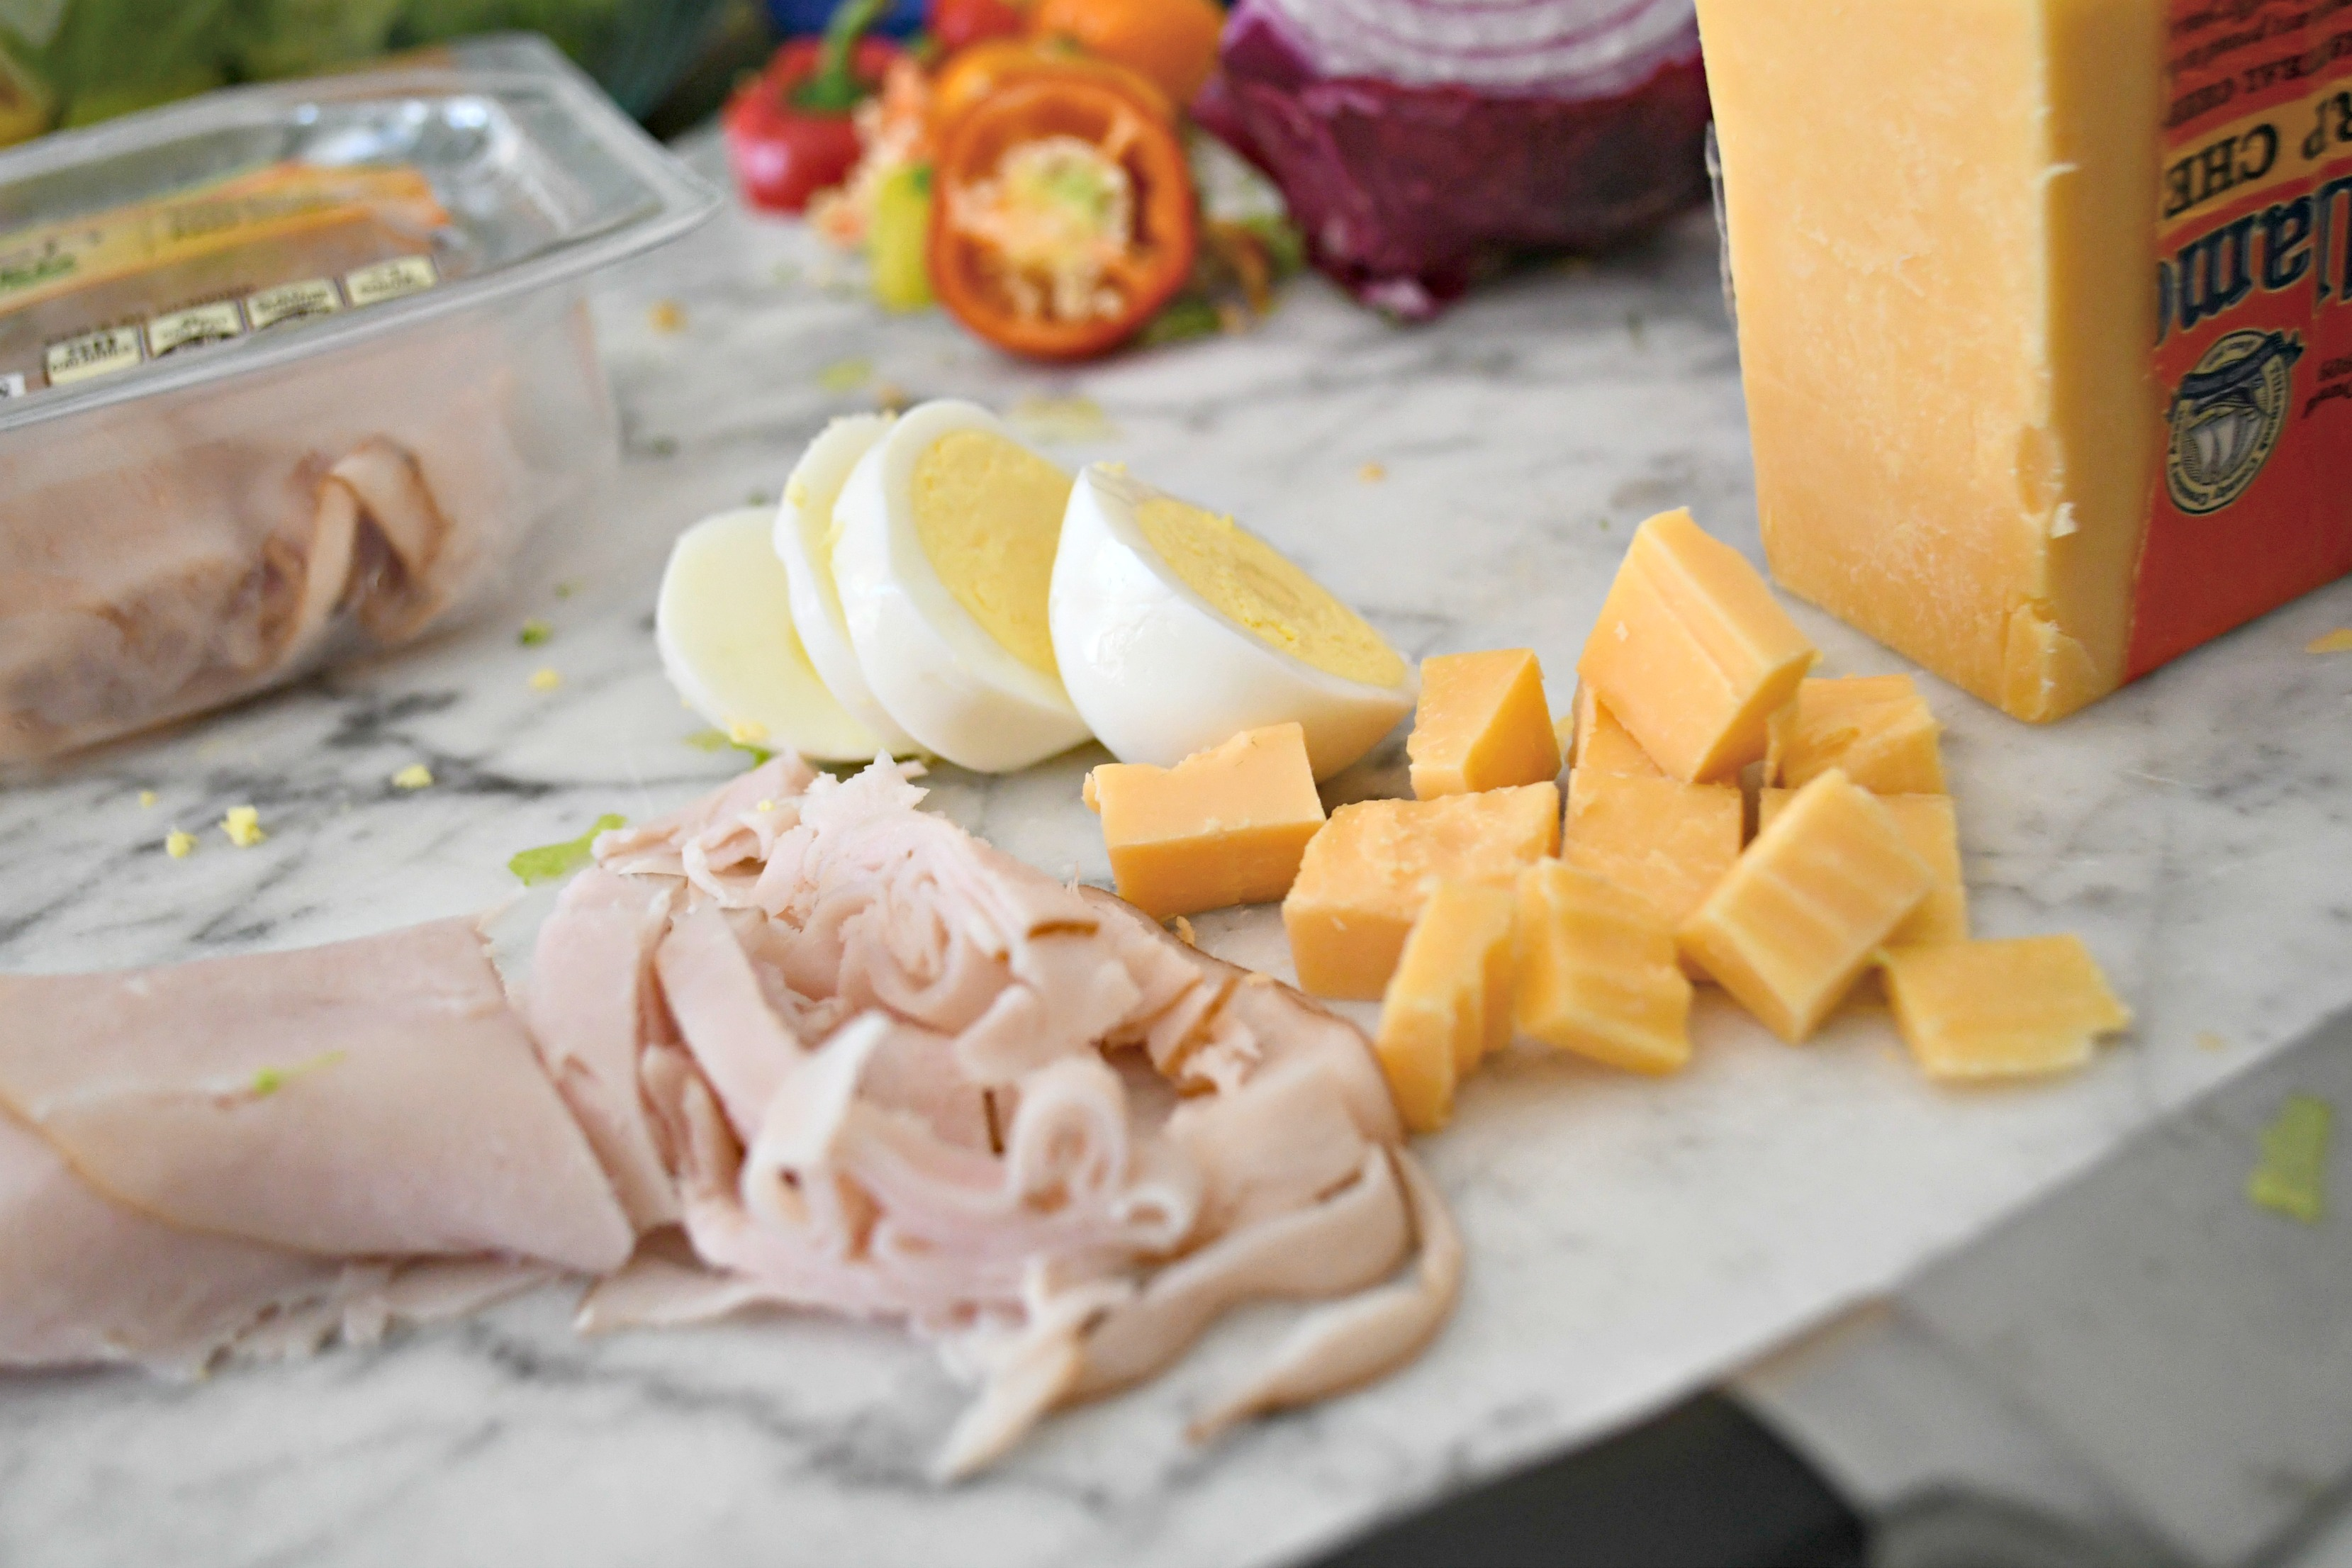 Weekly Sunday Salad Prep and my favorite dressing recipe -- Salad toppings